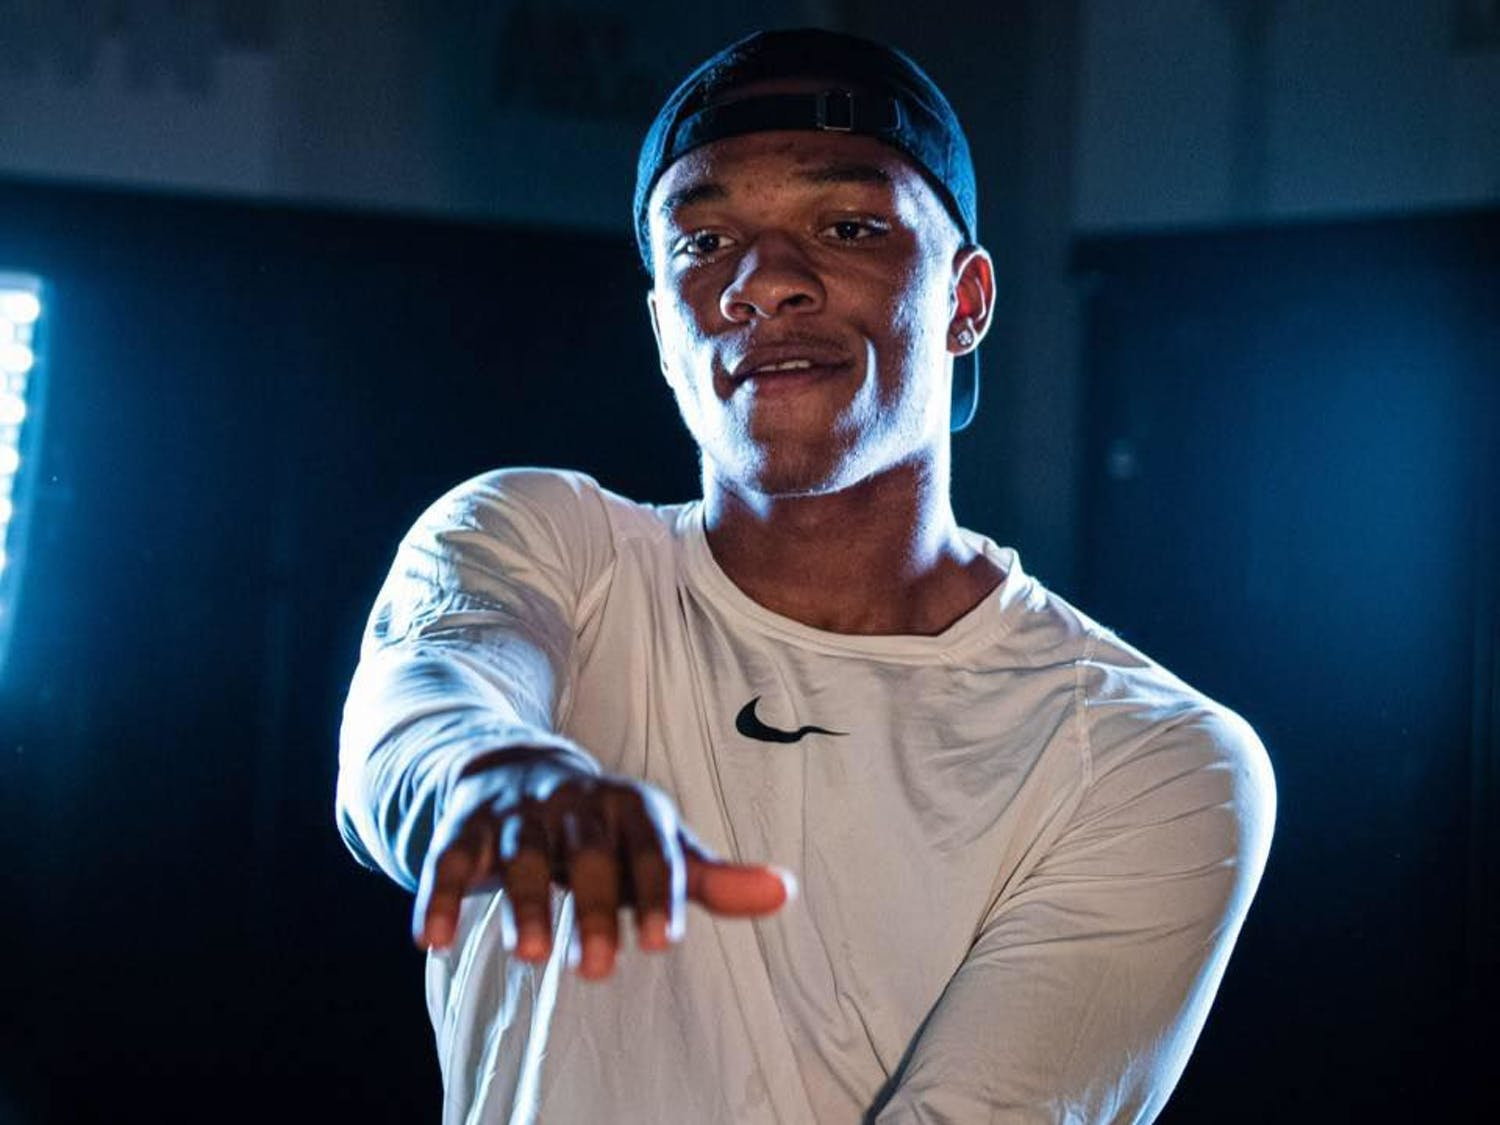 """Anthony Richardson, 17, will be featured on season 4 of the Netflix show """"QB1: Beyond the Lights."""" Richardson is the star quarterback of the Eastside High School football team."""